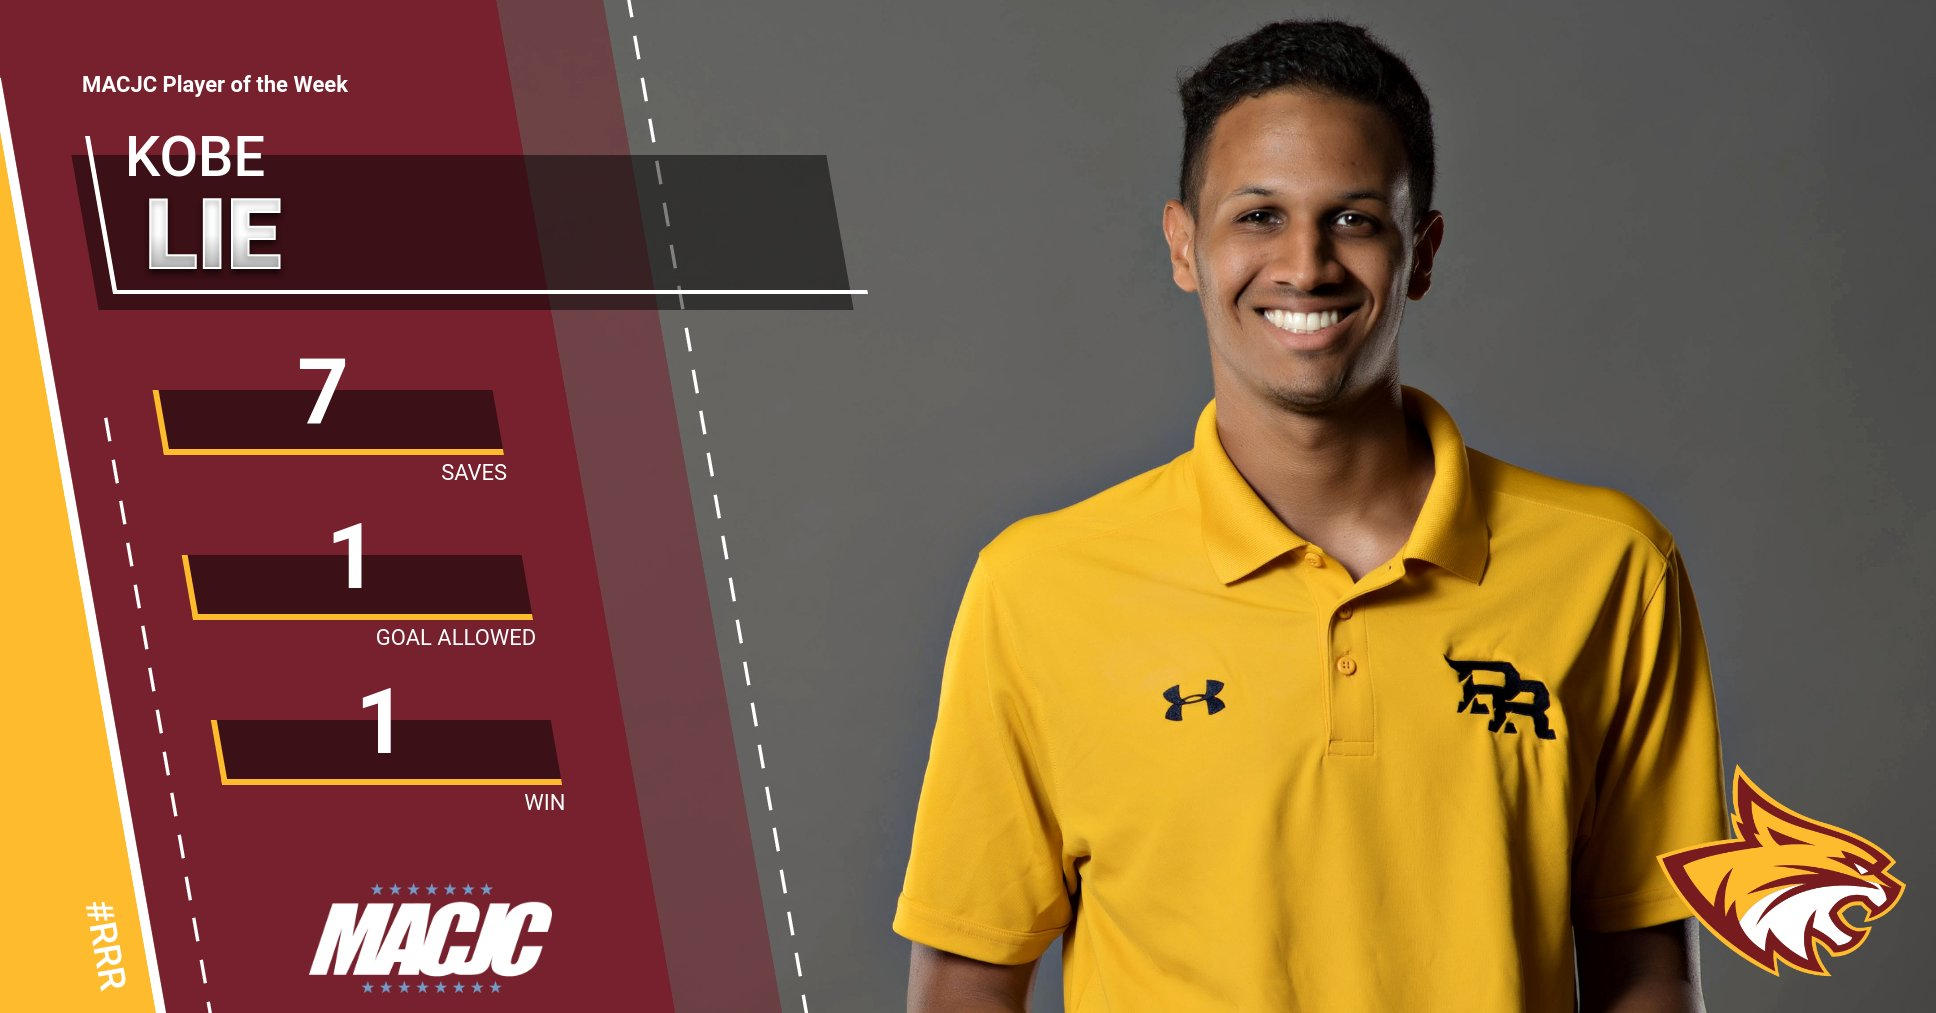 PRCC's Kobe Lie wins another MACJC honor